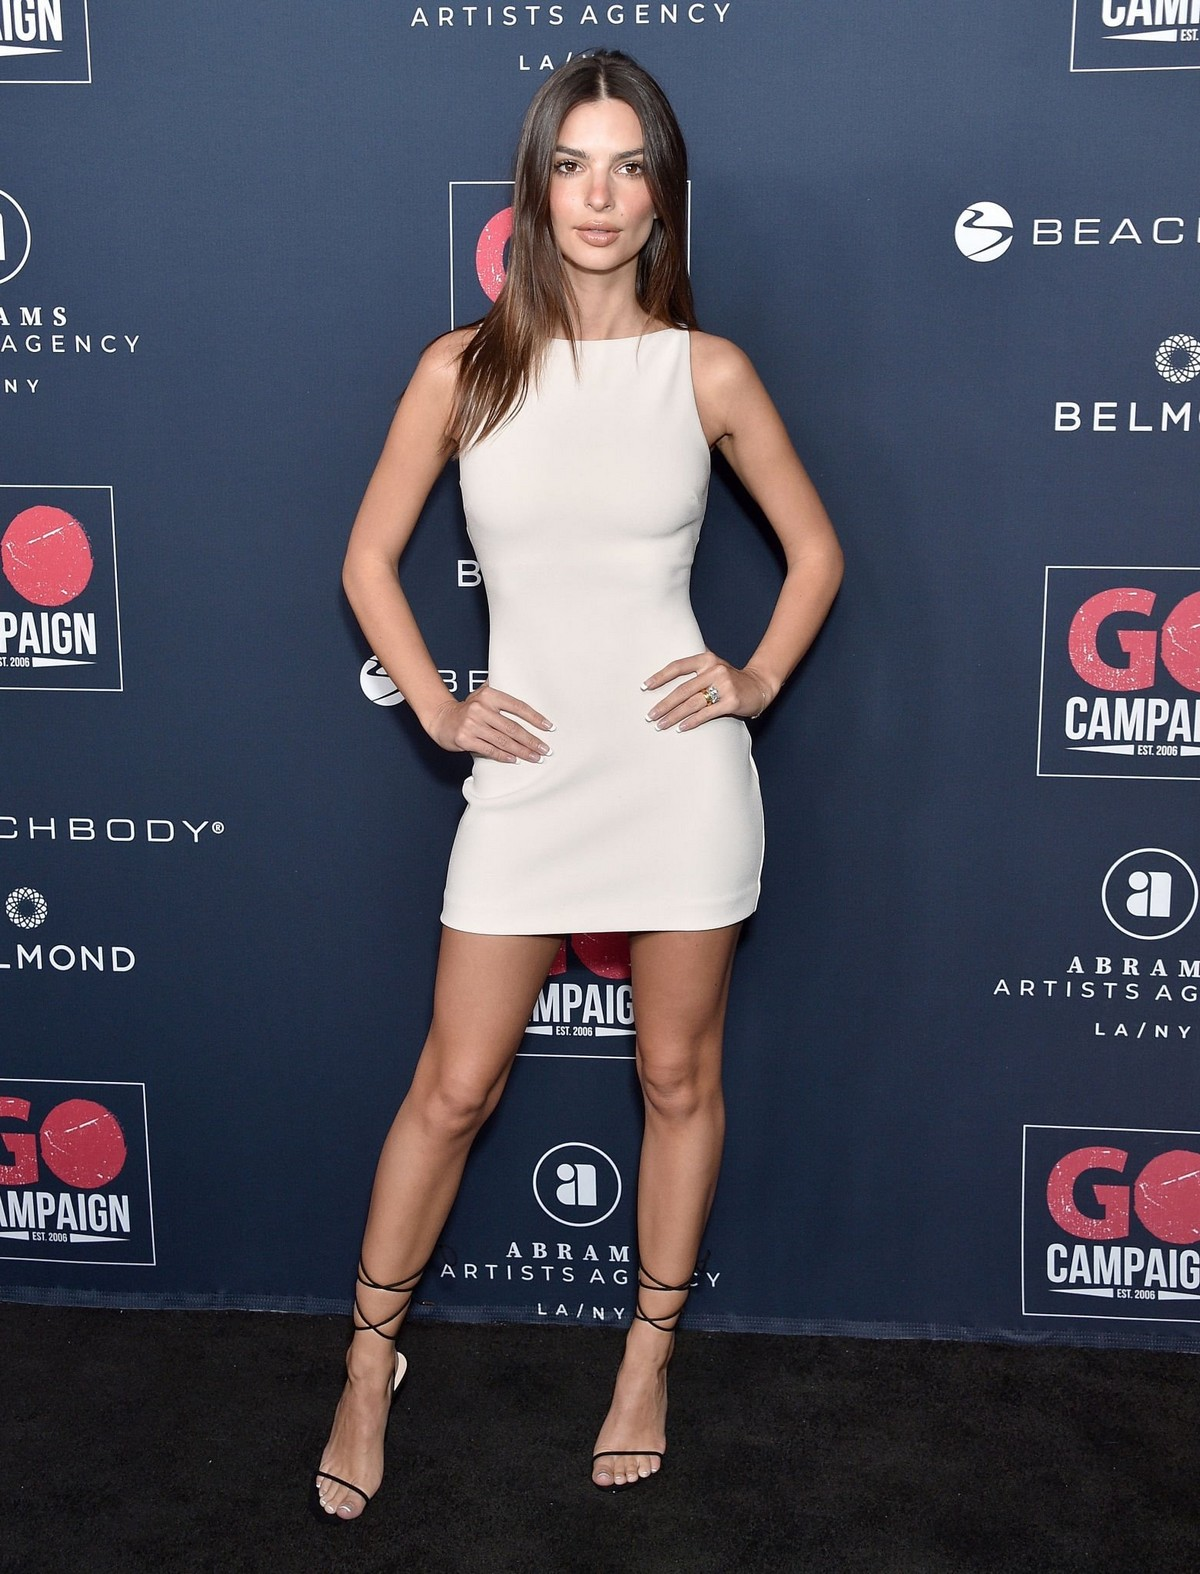 Emily Ratajkowski attends GO Campaign's 13th Annual Gala at NeueHouse in Hollywood 2019/11/16 8